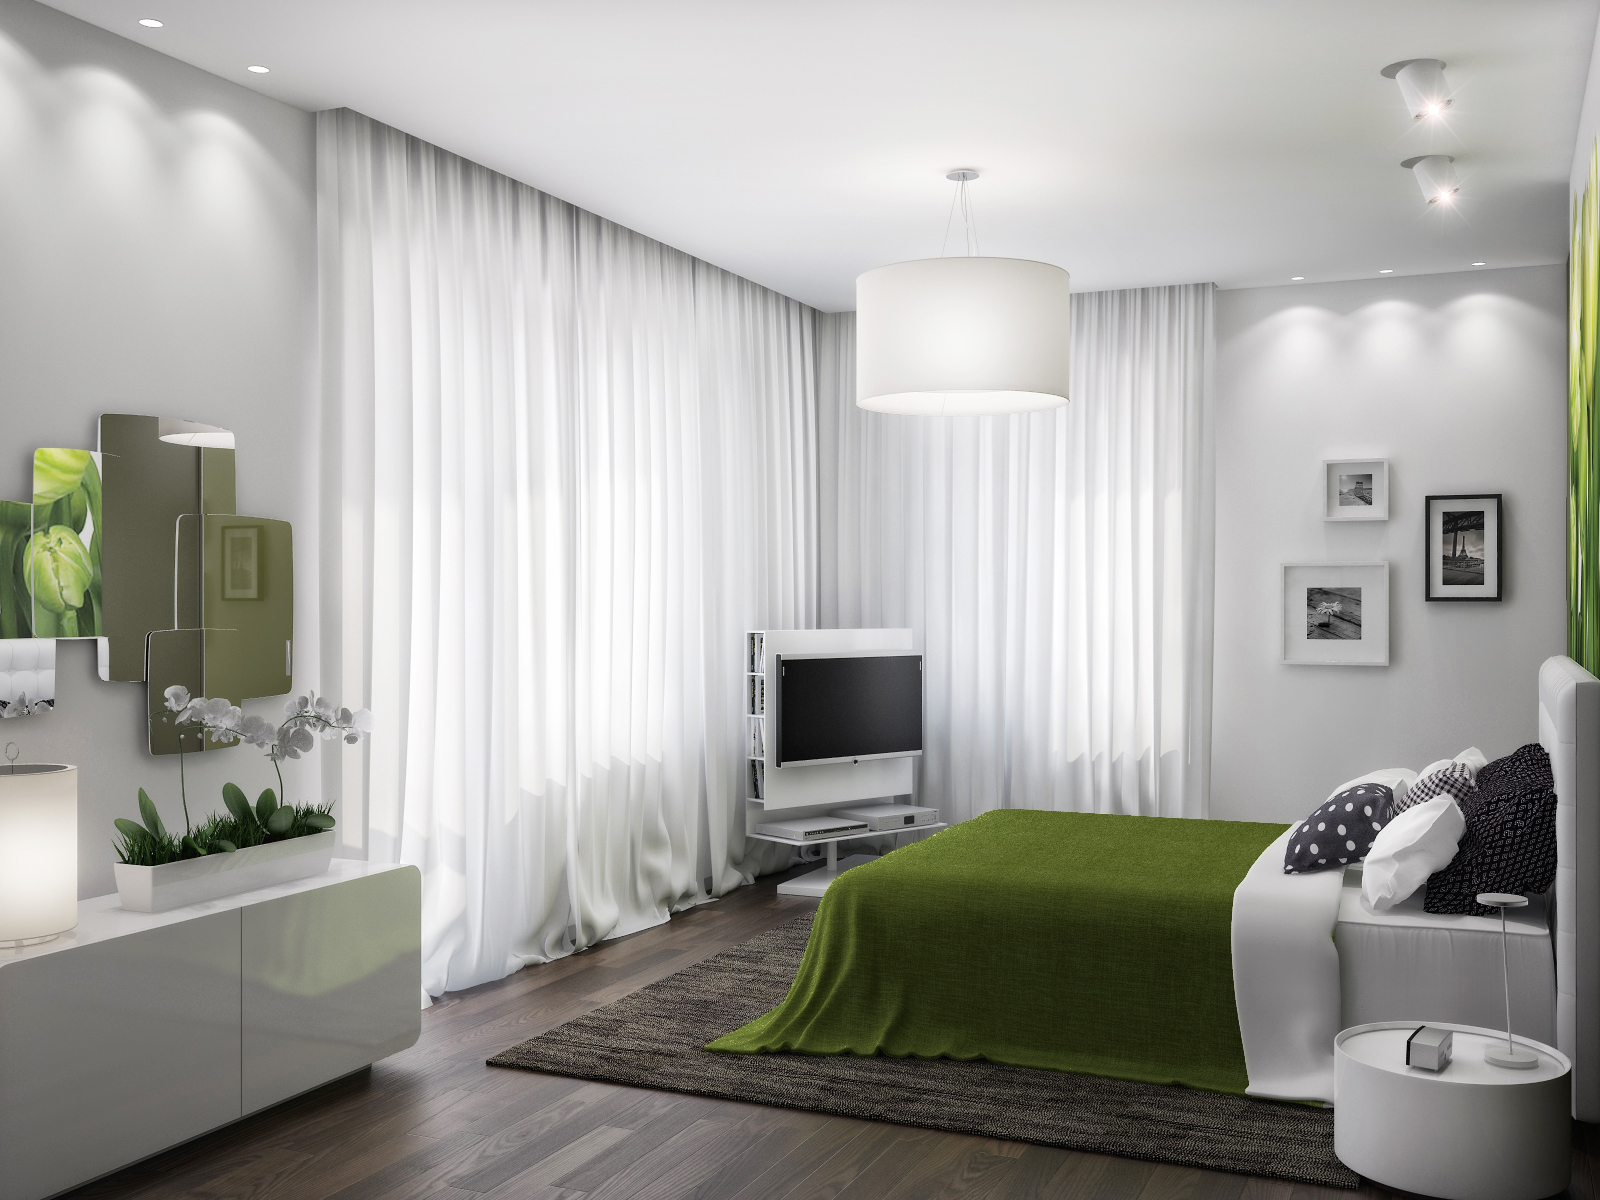 Green white bedroom scheme interior design ideas for Bedroom designs white